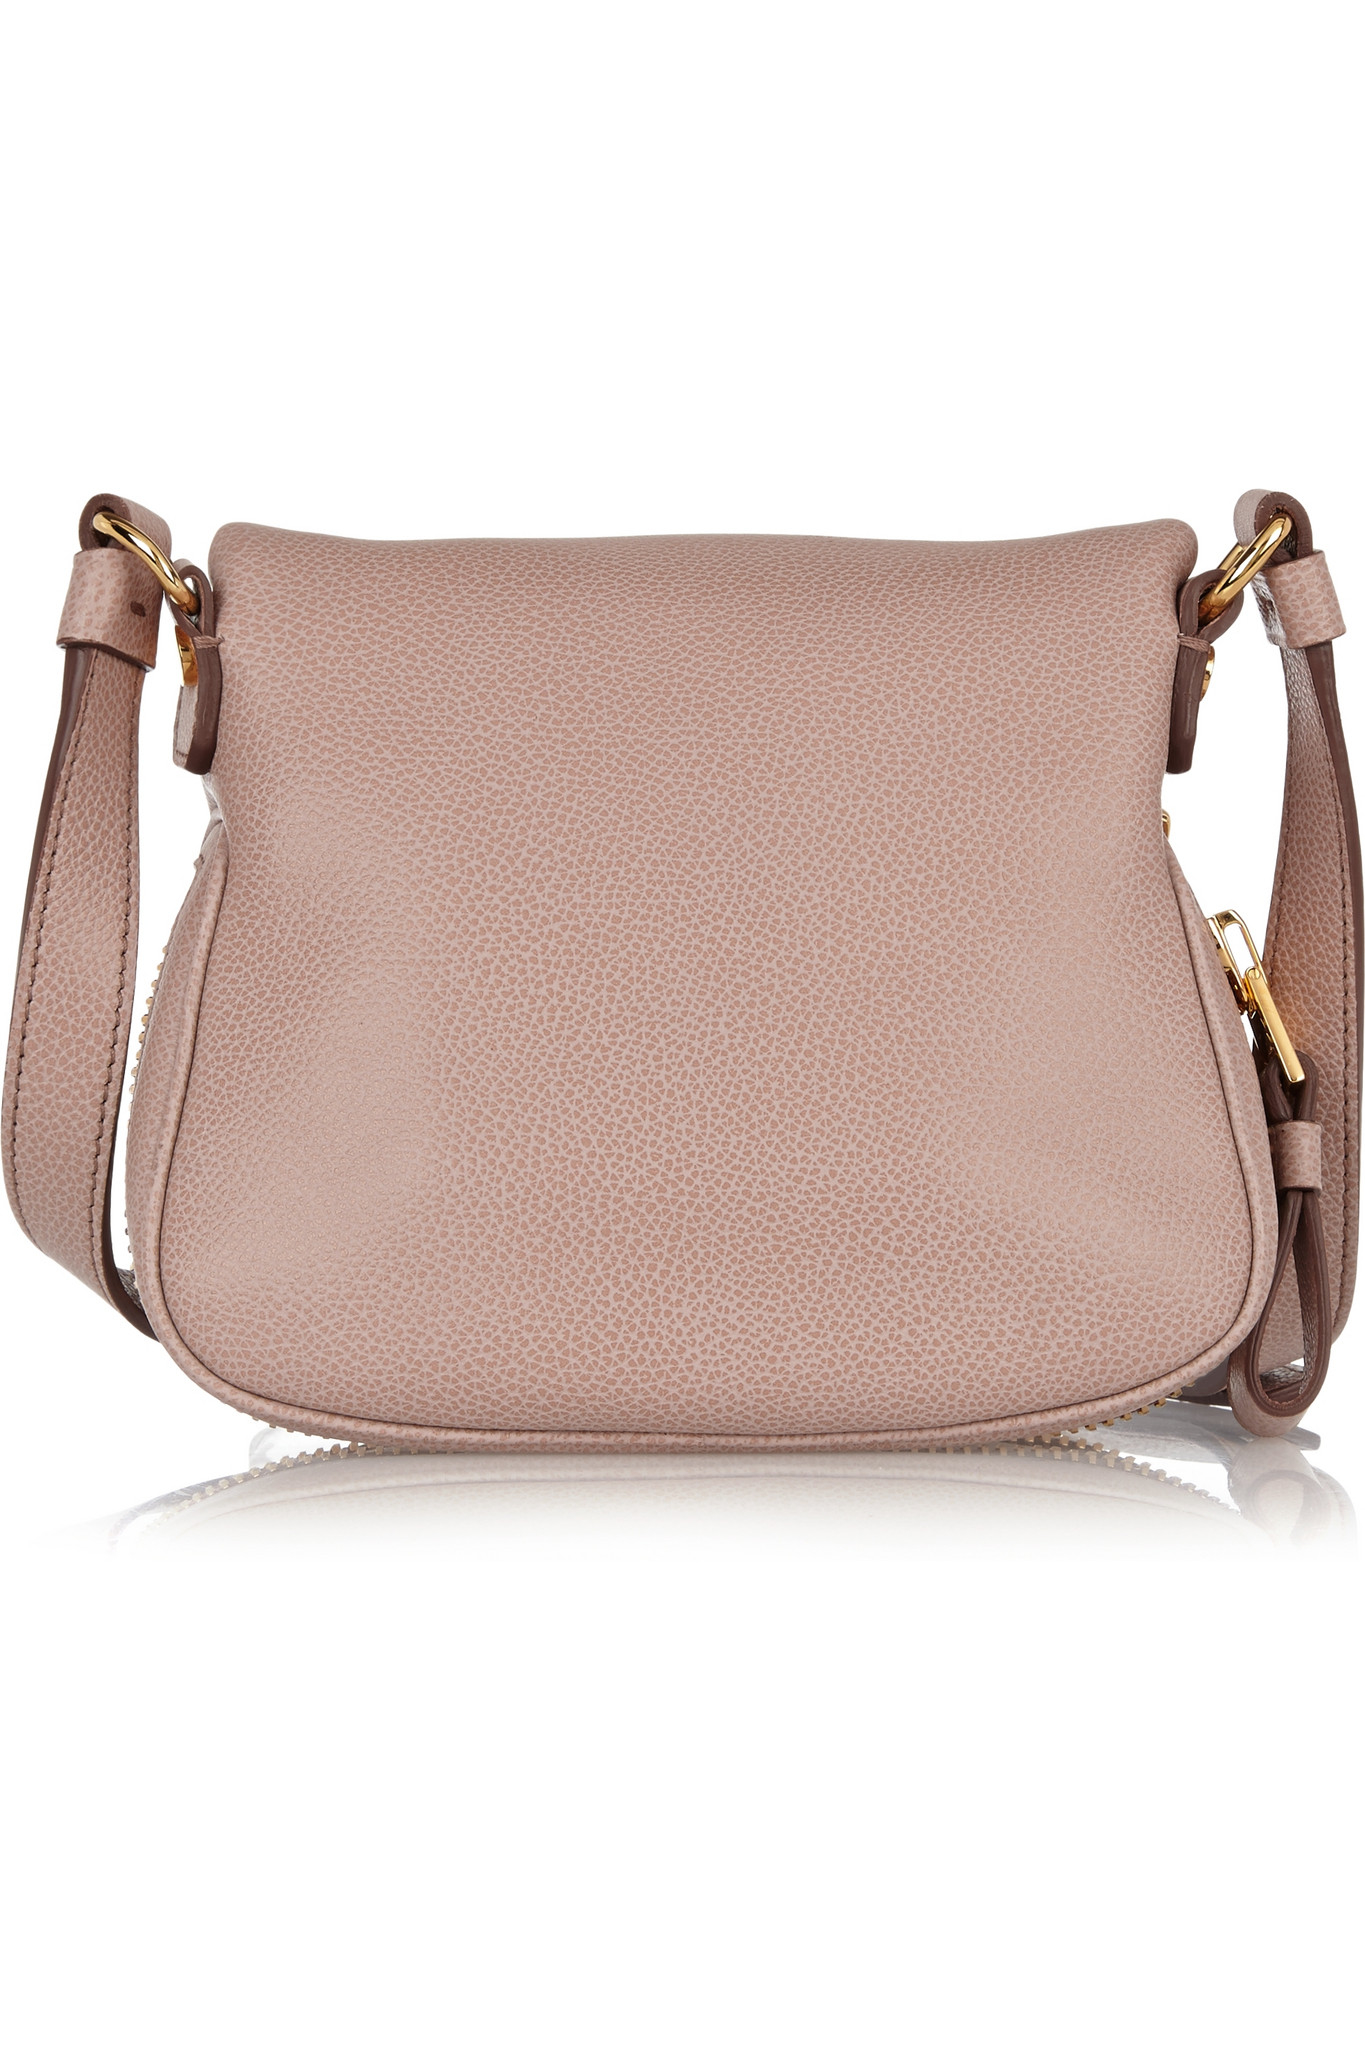 28fbb934d2dc Tom Ford Jennifer Mini Textured-leather Shoulder Bag in Pink - Lyst